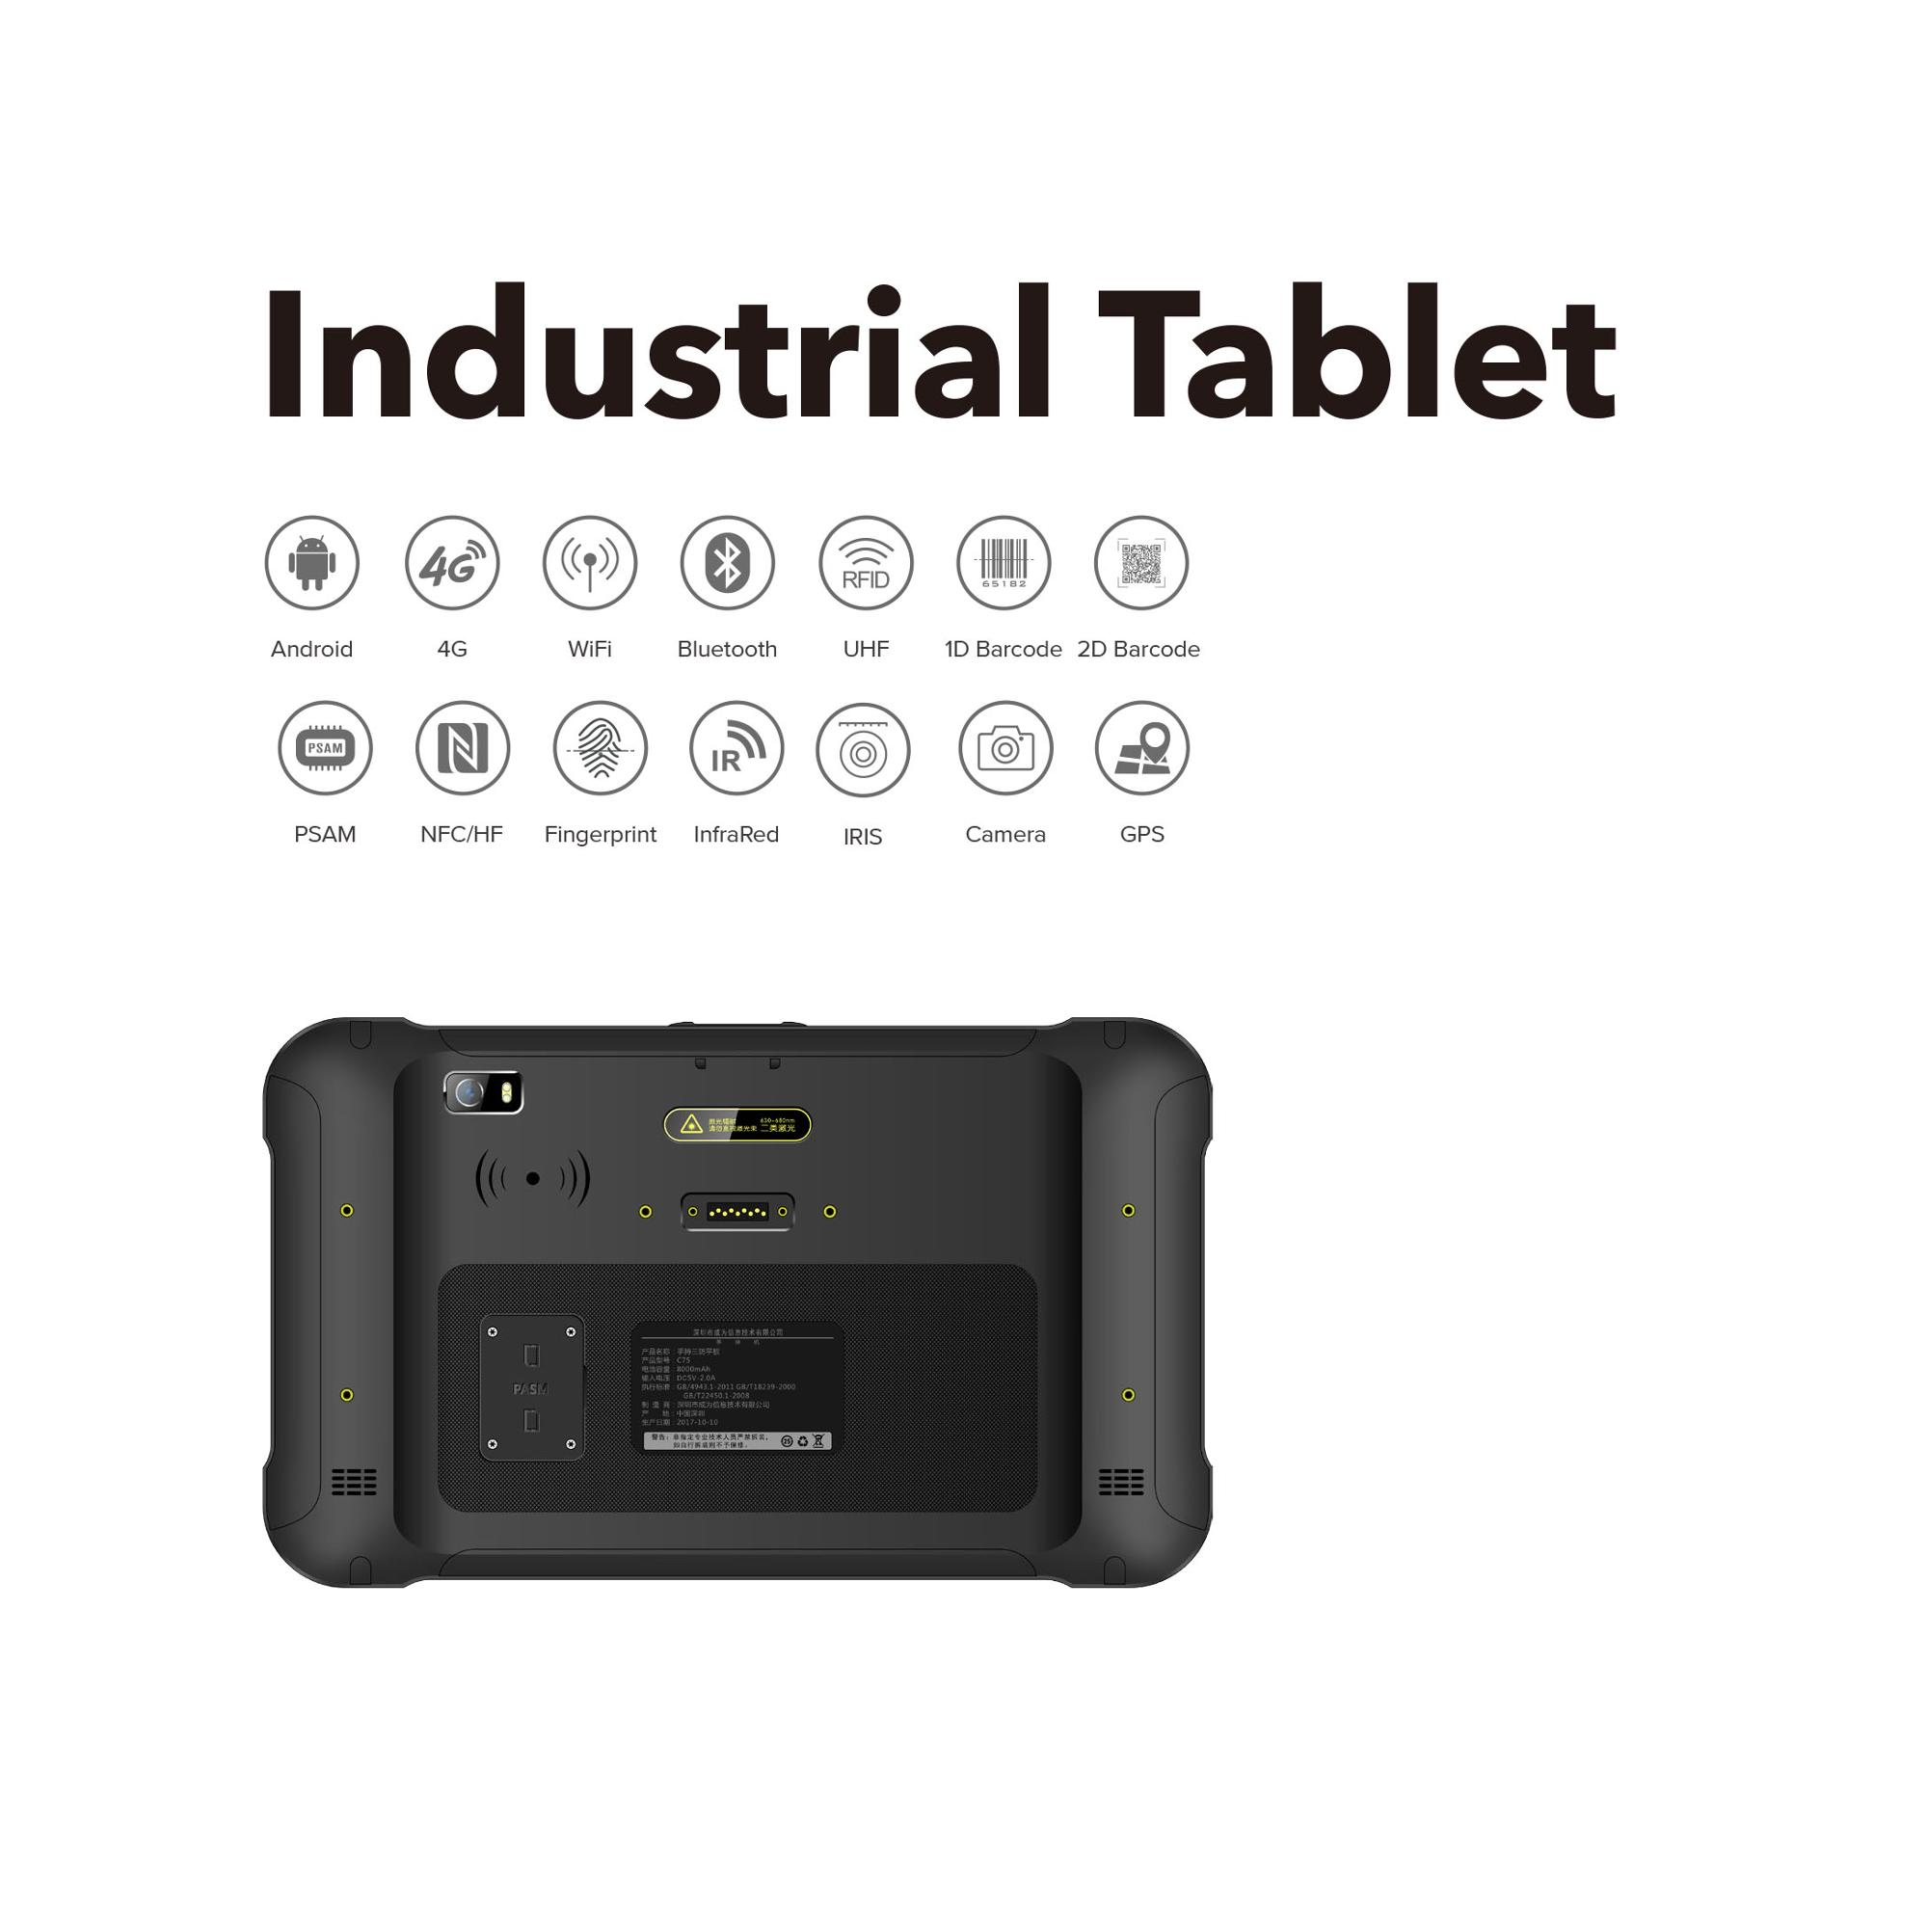 8 pollice IP65 Rugged Tablet Android PC, Impermeabile Android Tablet PC, Tablet Pc Industriale